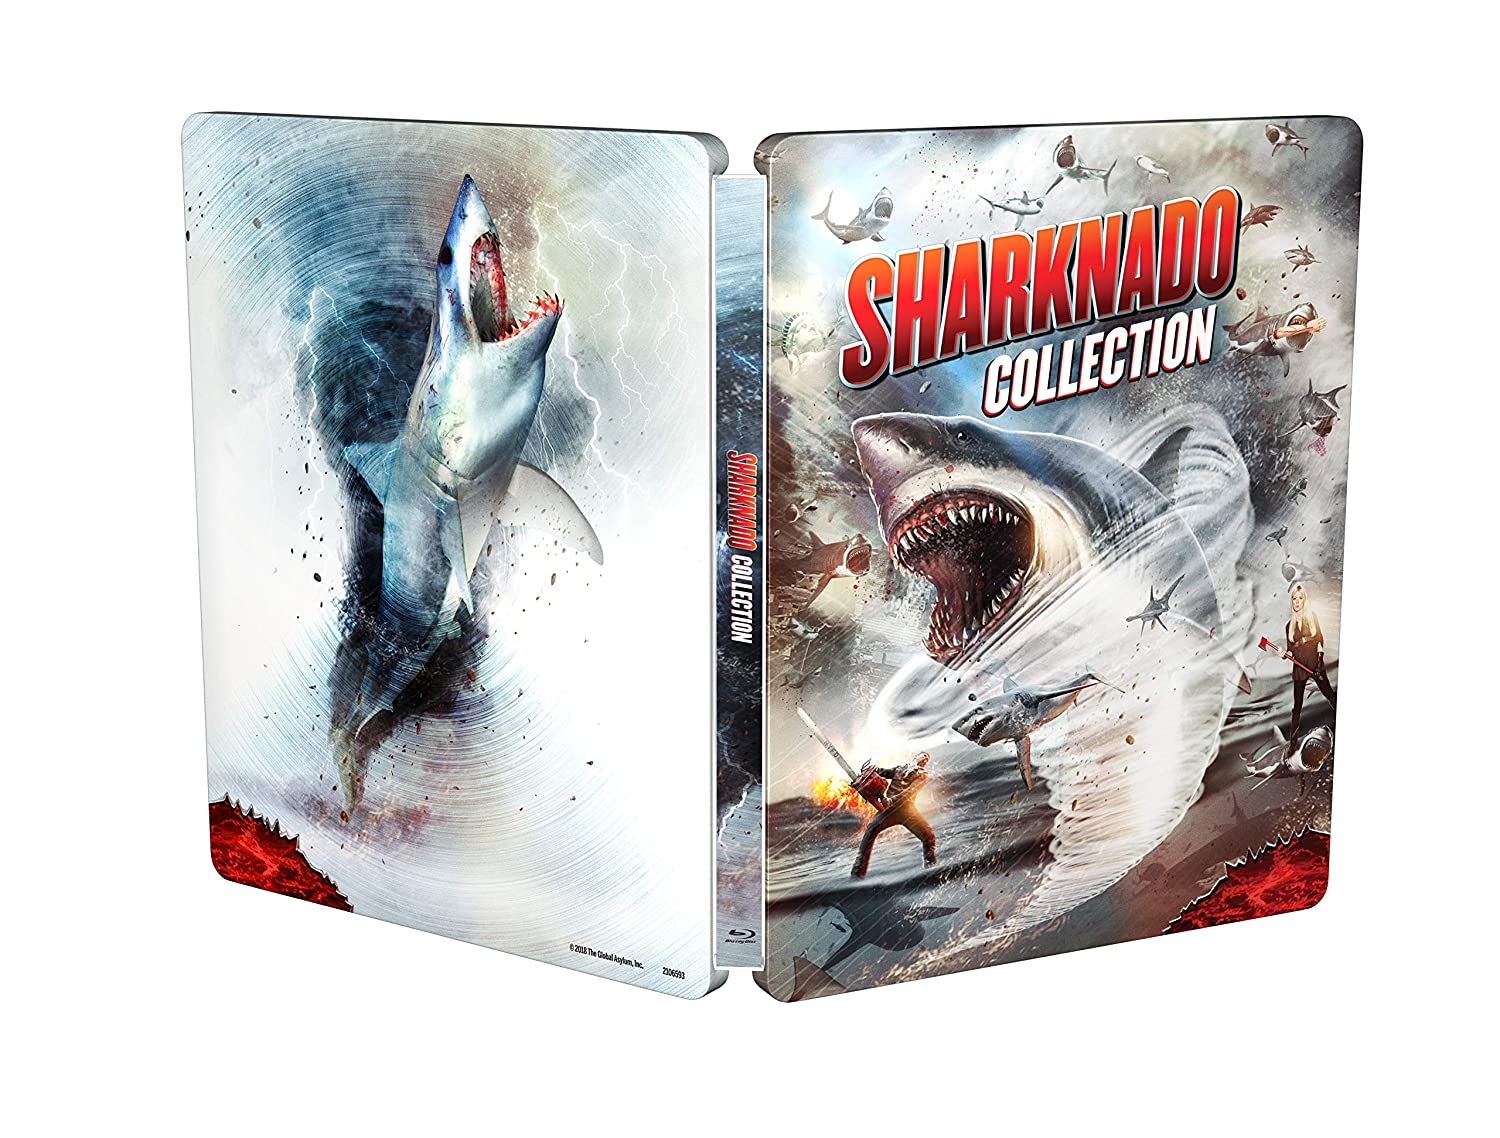 sharknado 3 full movie in hindi free download